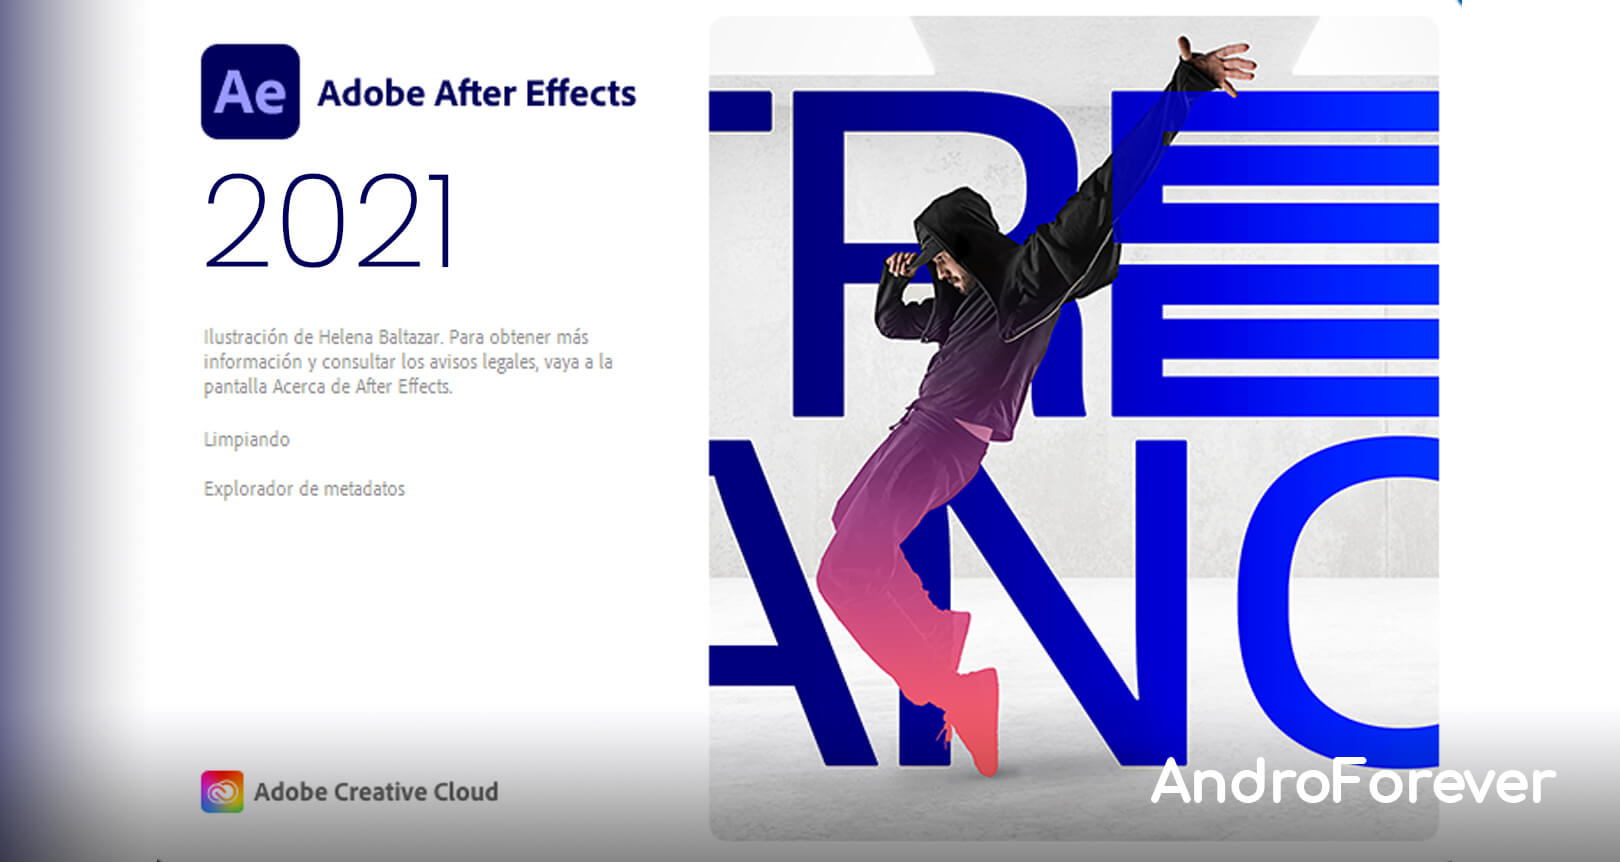 Download Free ᐈ Adobe After Effects CC 2021 v18.1.0.38 ᐈ ...